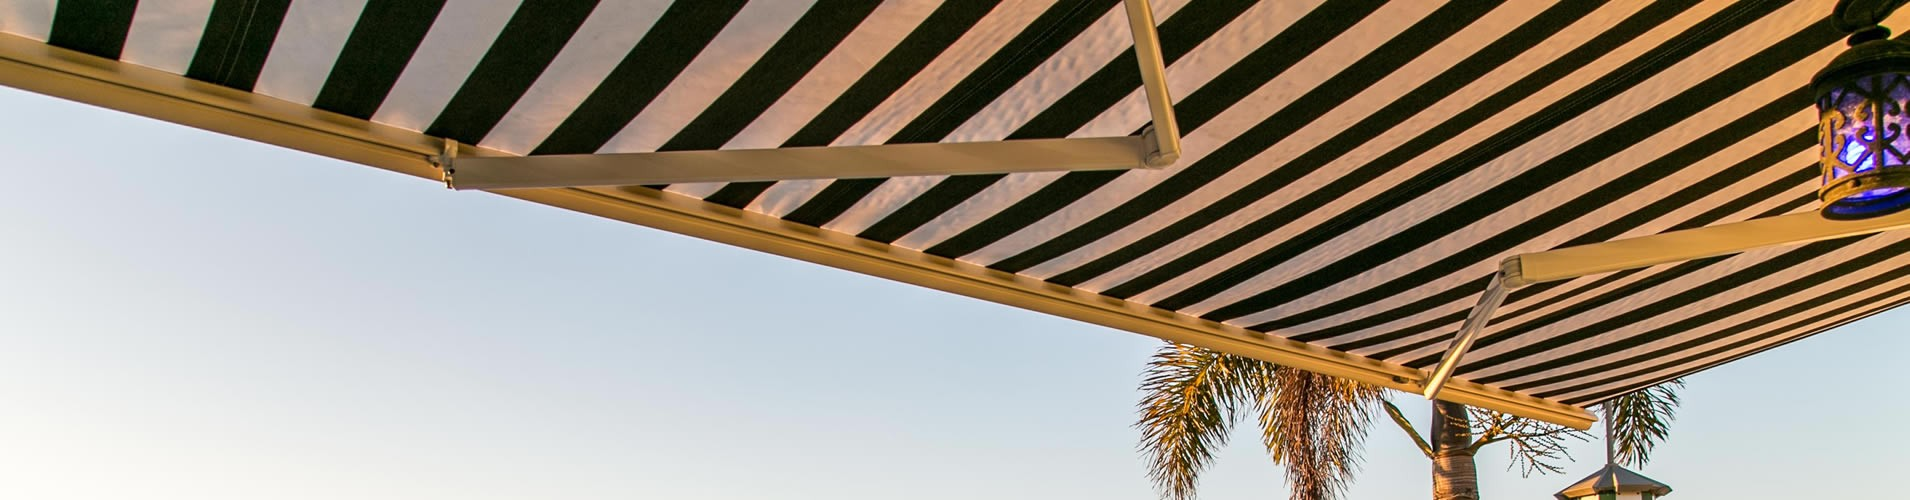 houston awnings